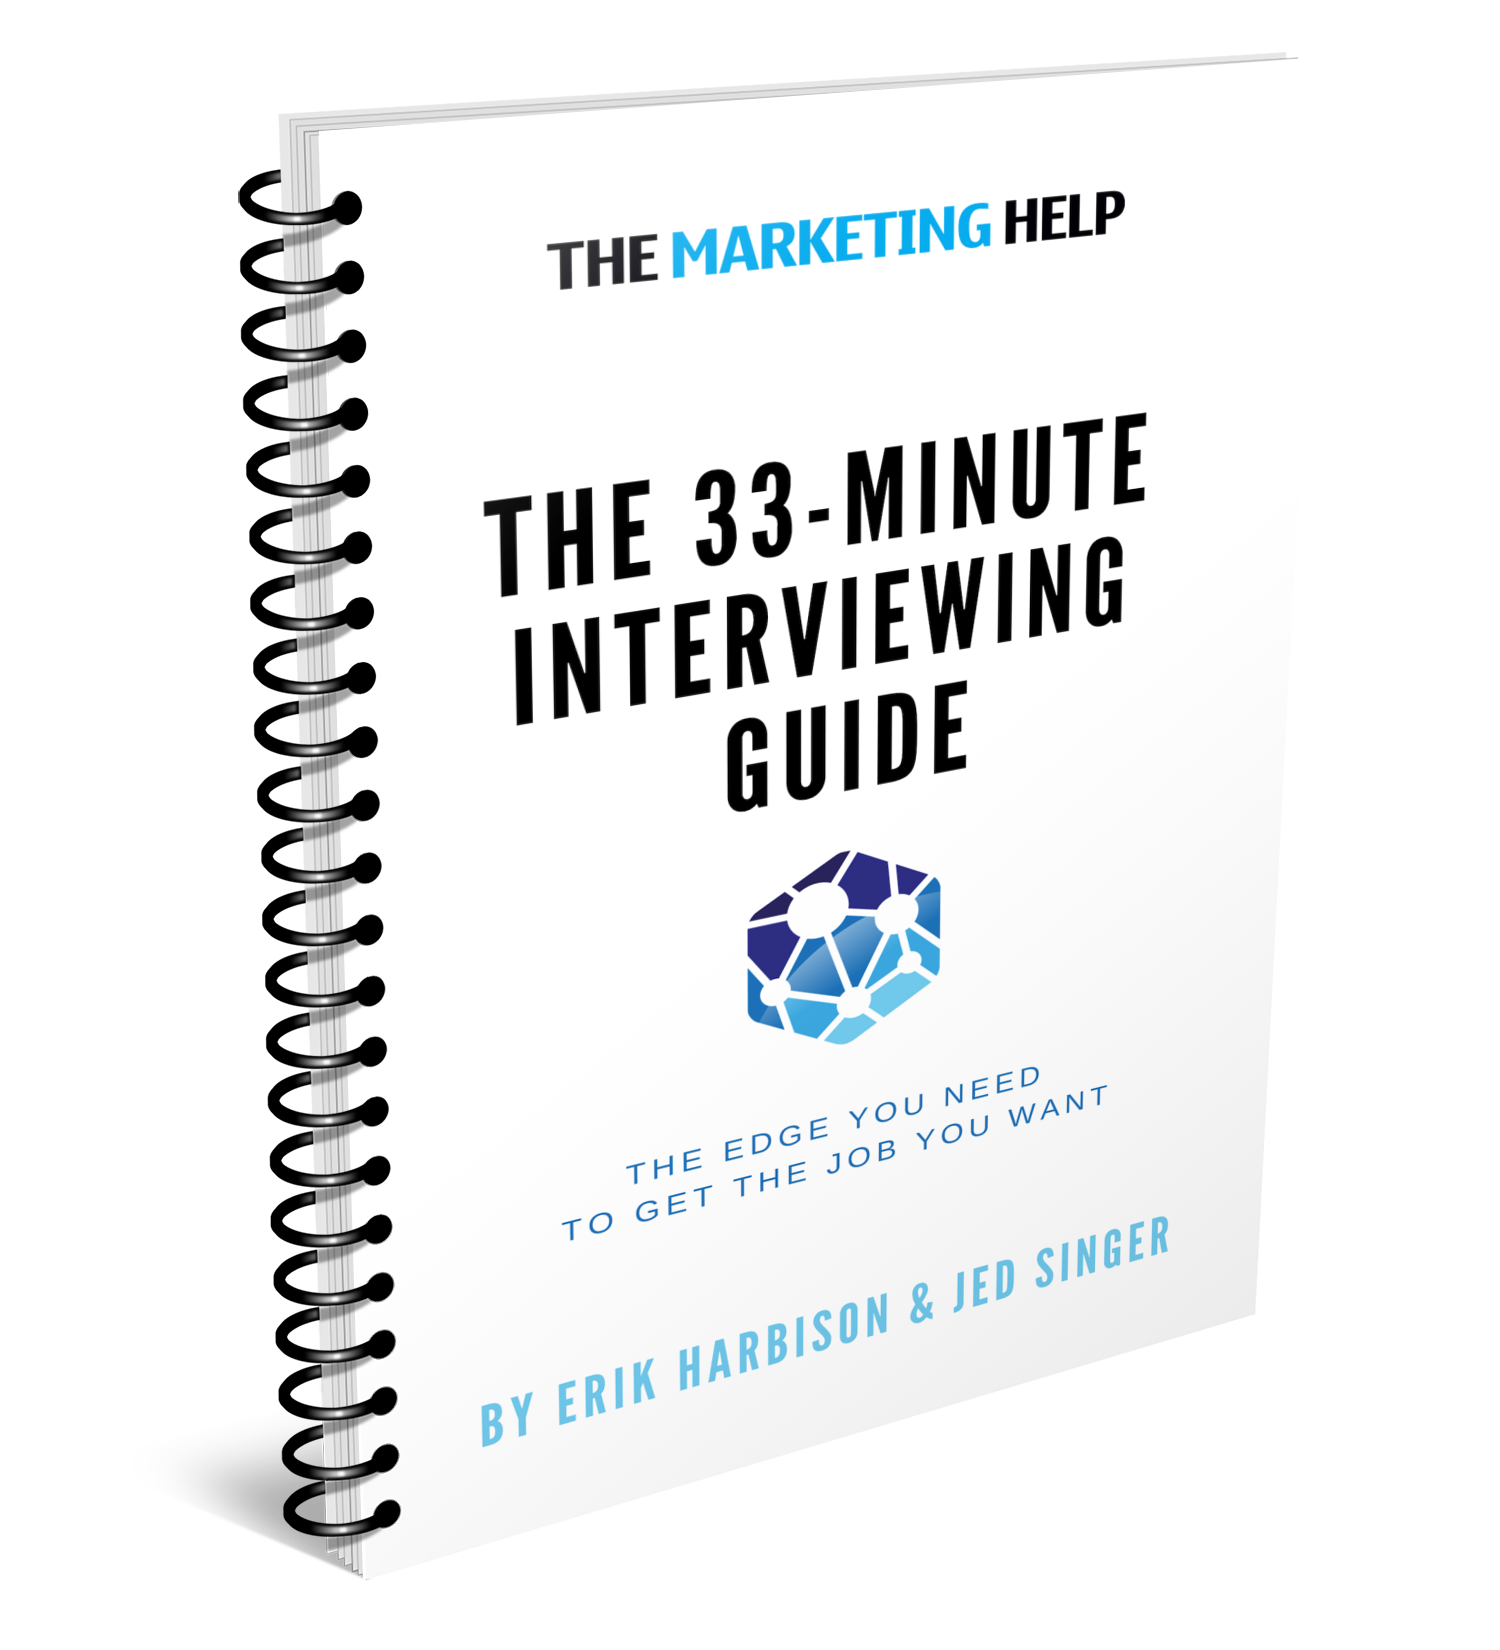 The 33-Minute Interviewing Guidebook - Need to nail that marketing role interview? Here's your shortcut up the trail…Our 33-Minute Guidebooks provide mastery in various career subjects in only — you guessed it — about half an hour.